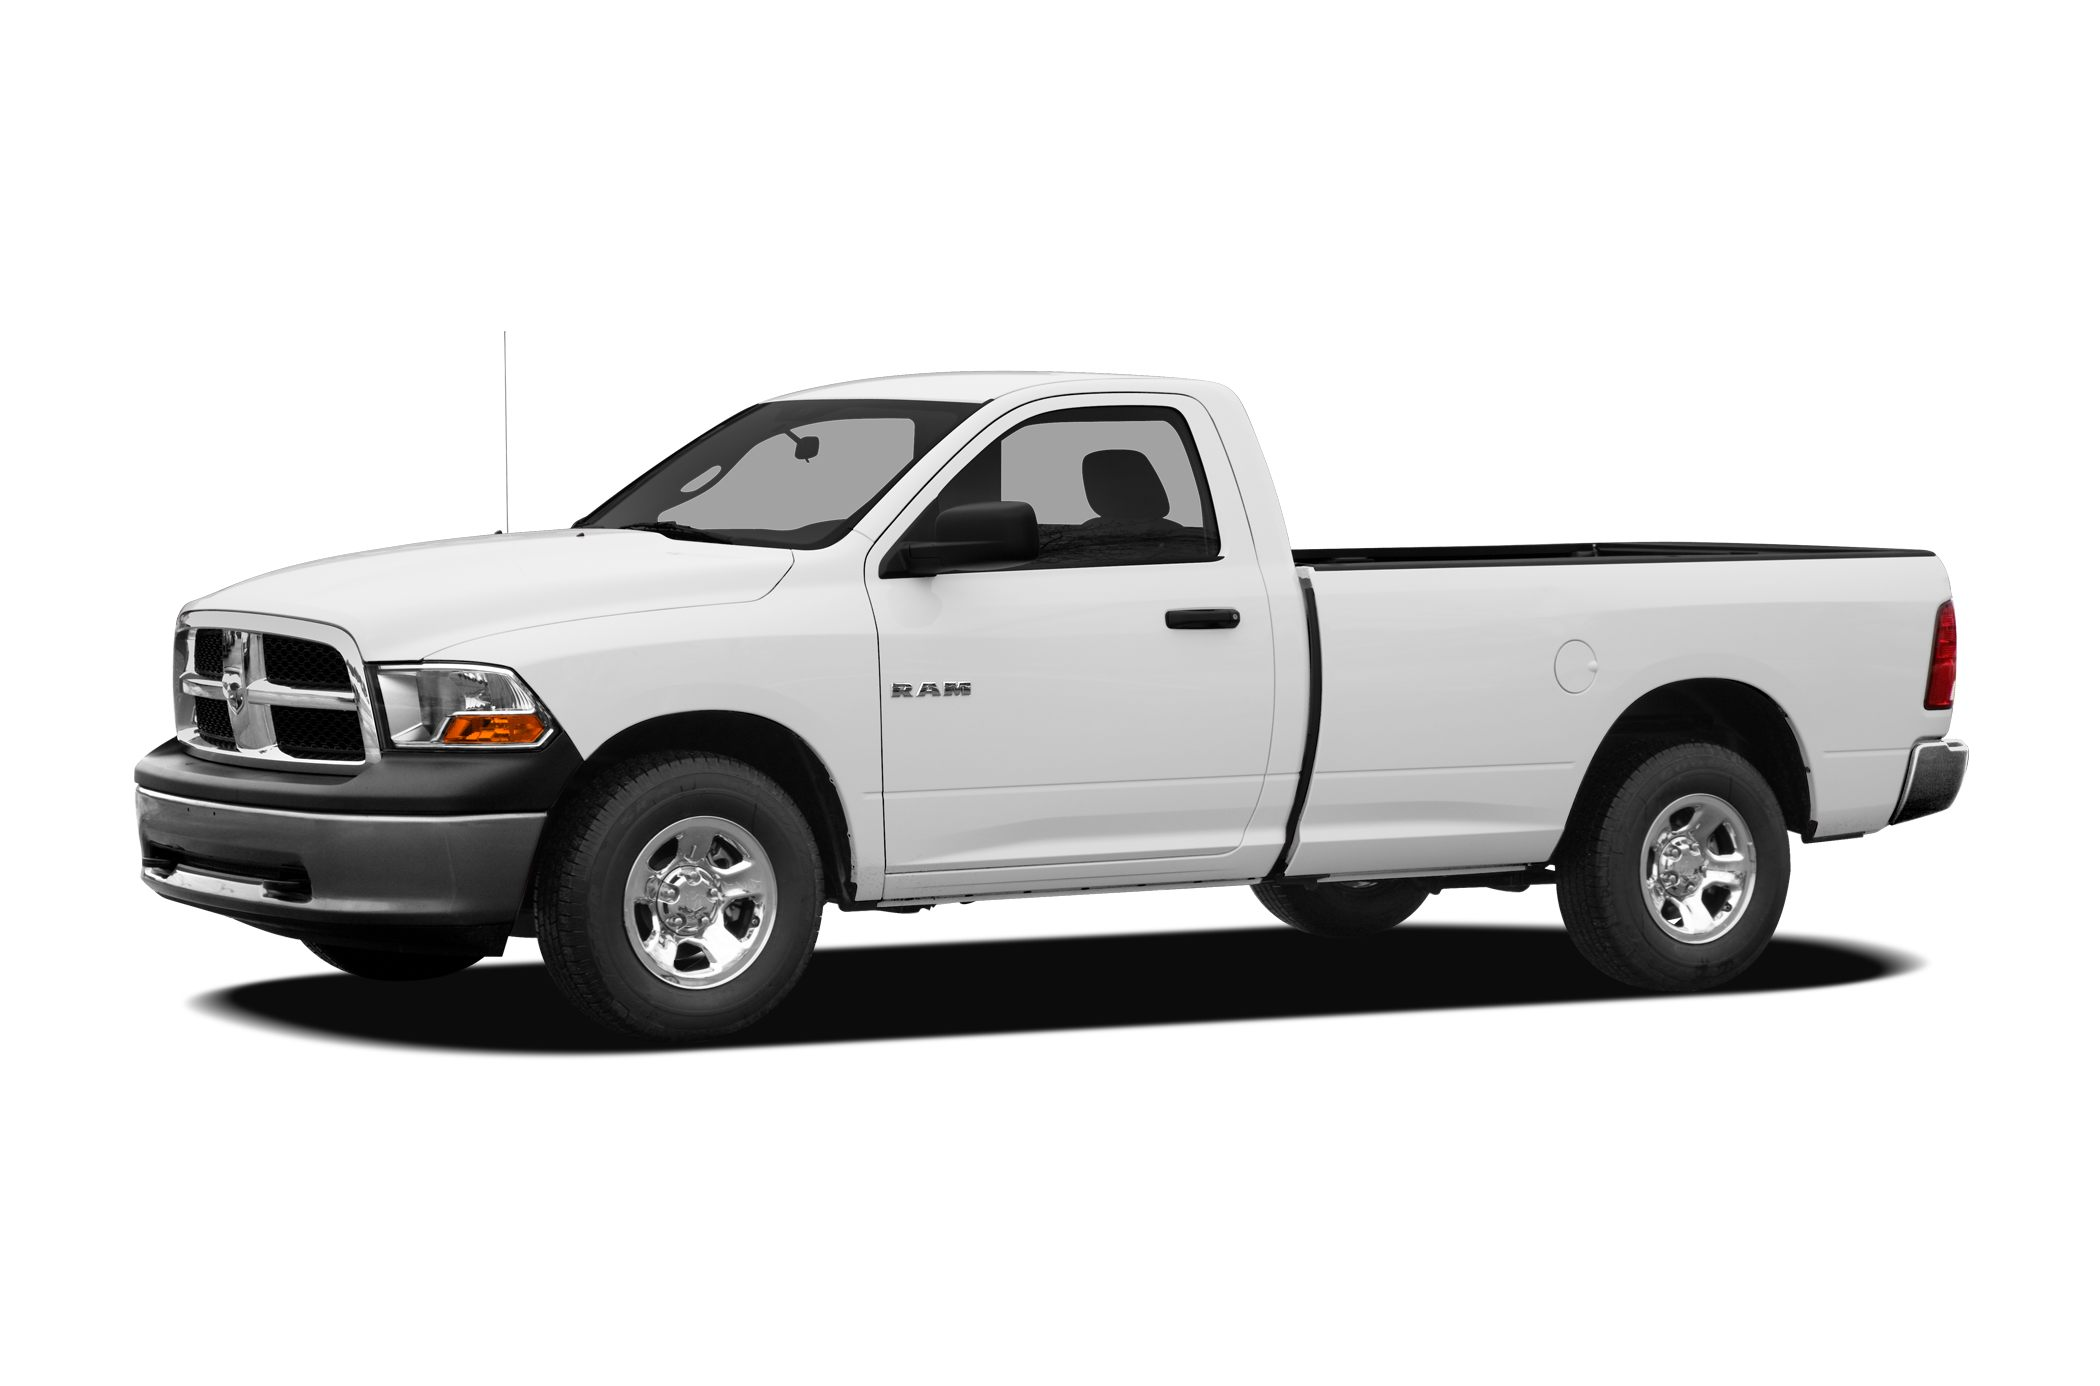 2009 Dodge Ram 1500 SLT Crew Cab Pickup for sale in Brownsville for $18,571 with 101,402 miles